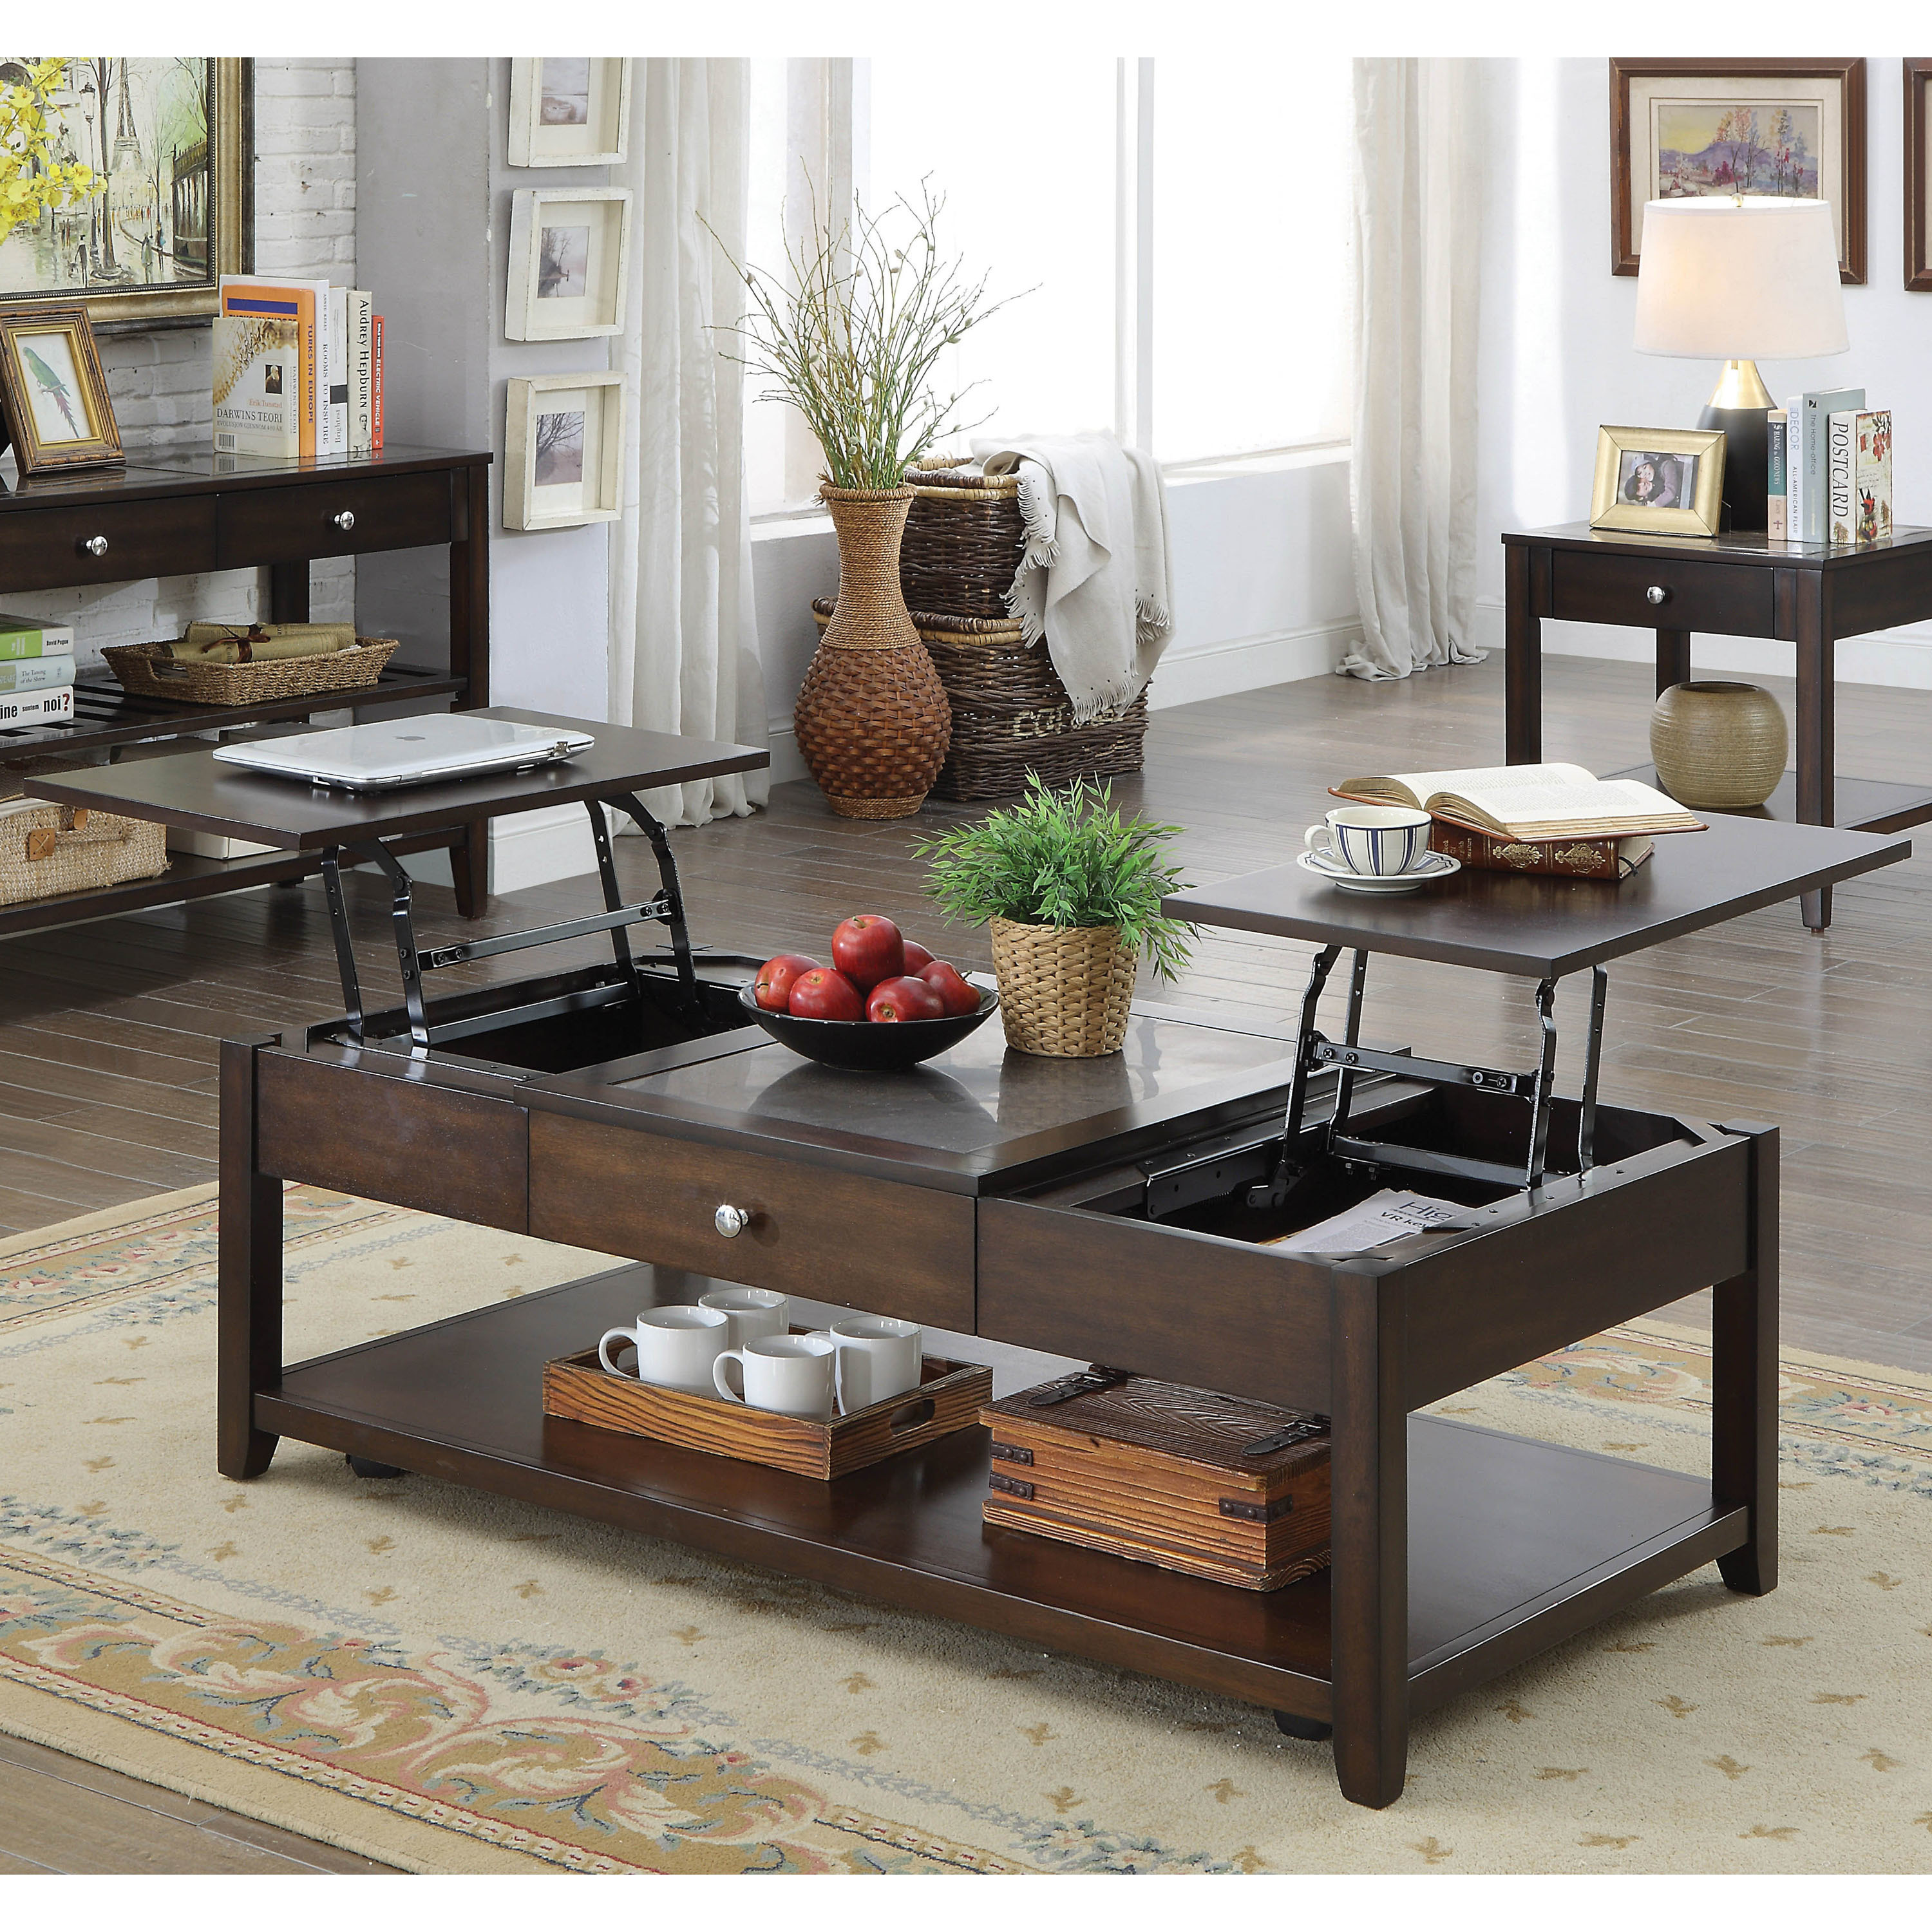 Furniture of america reveille espresso celestite lift top coffee table